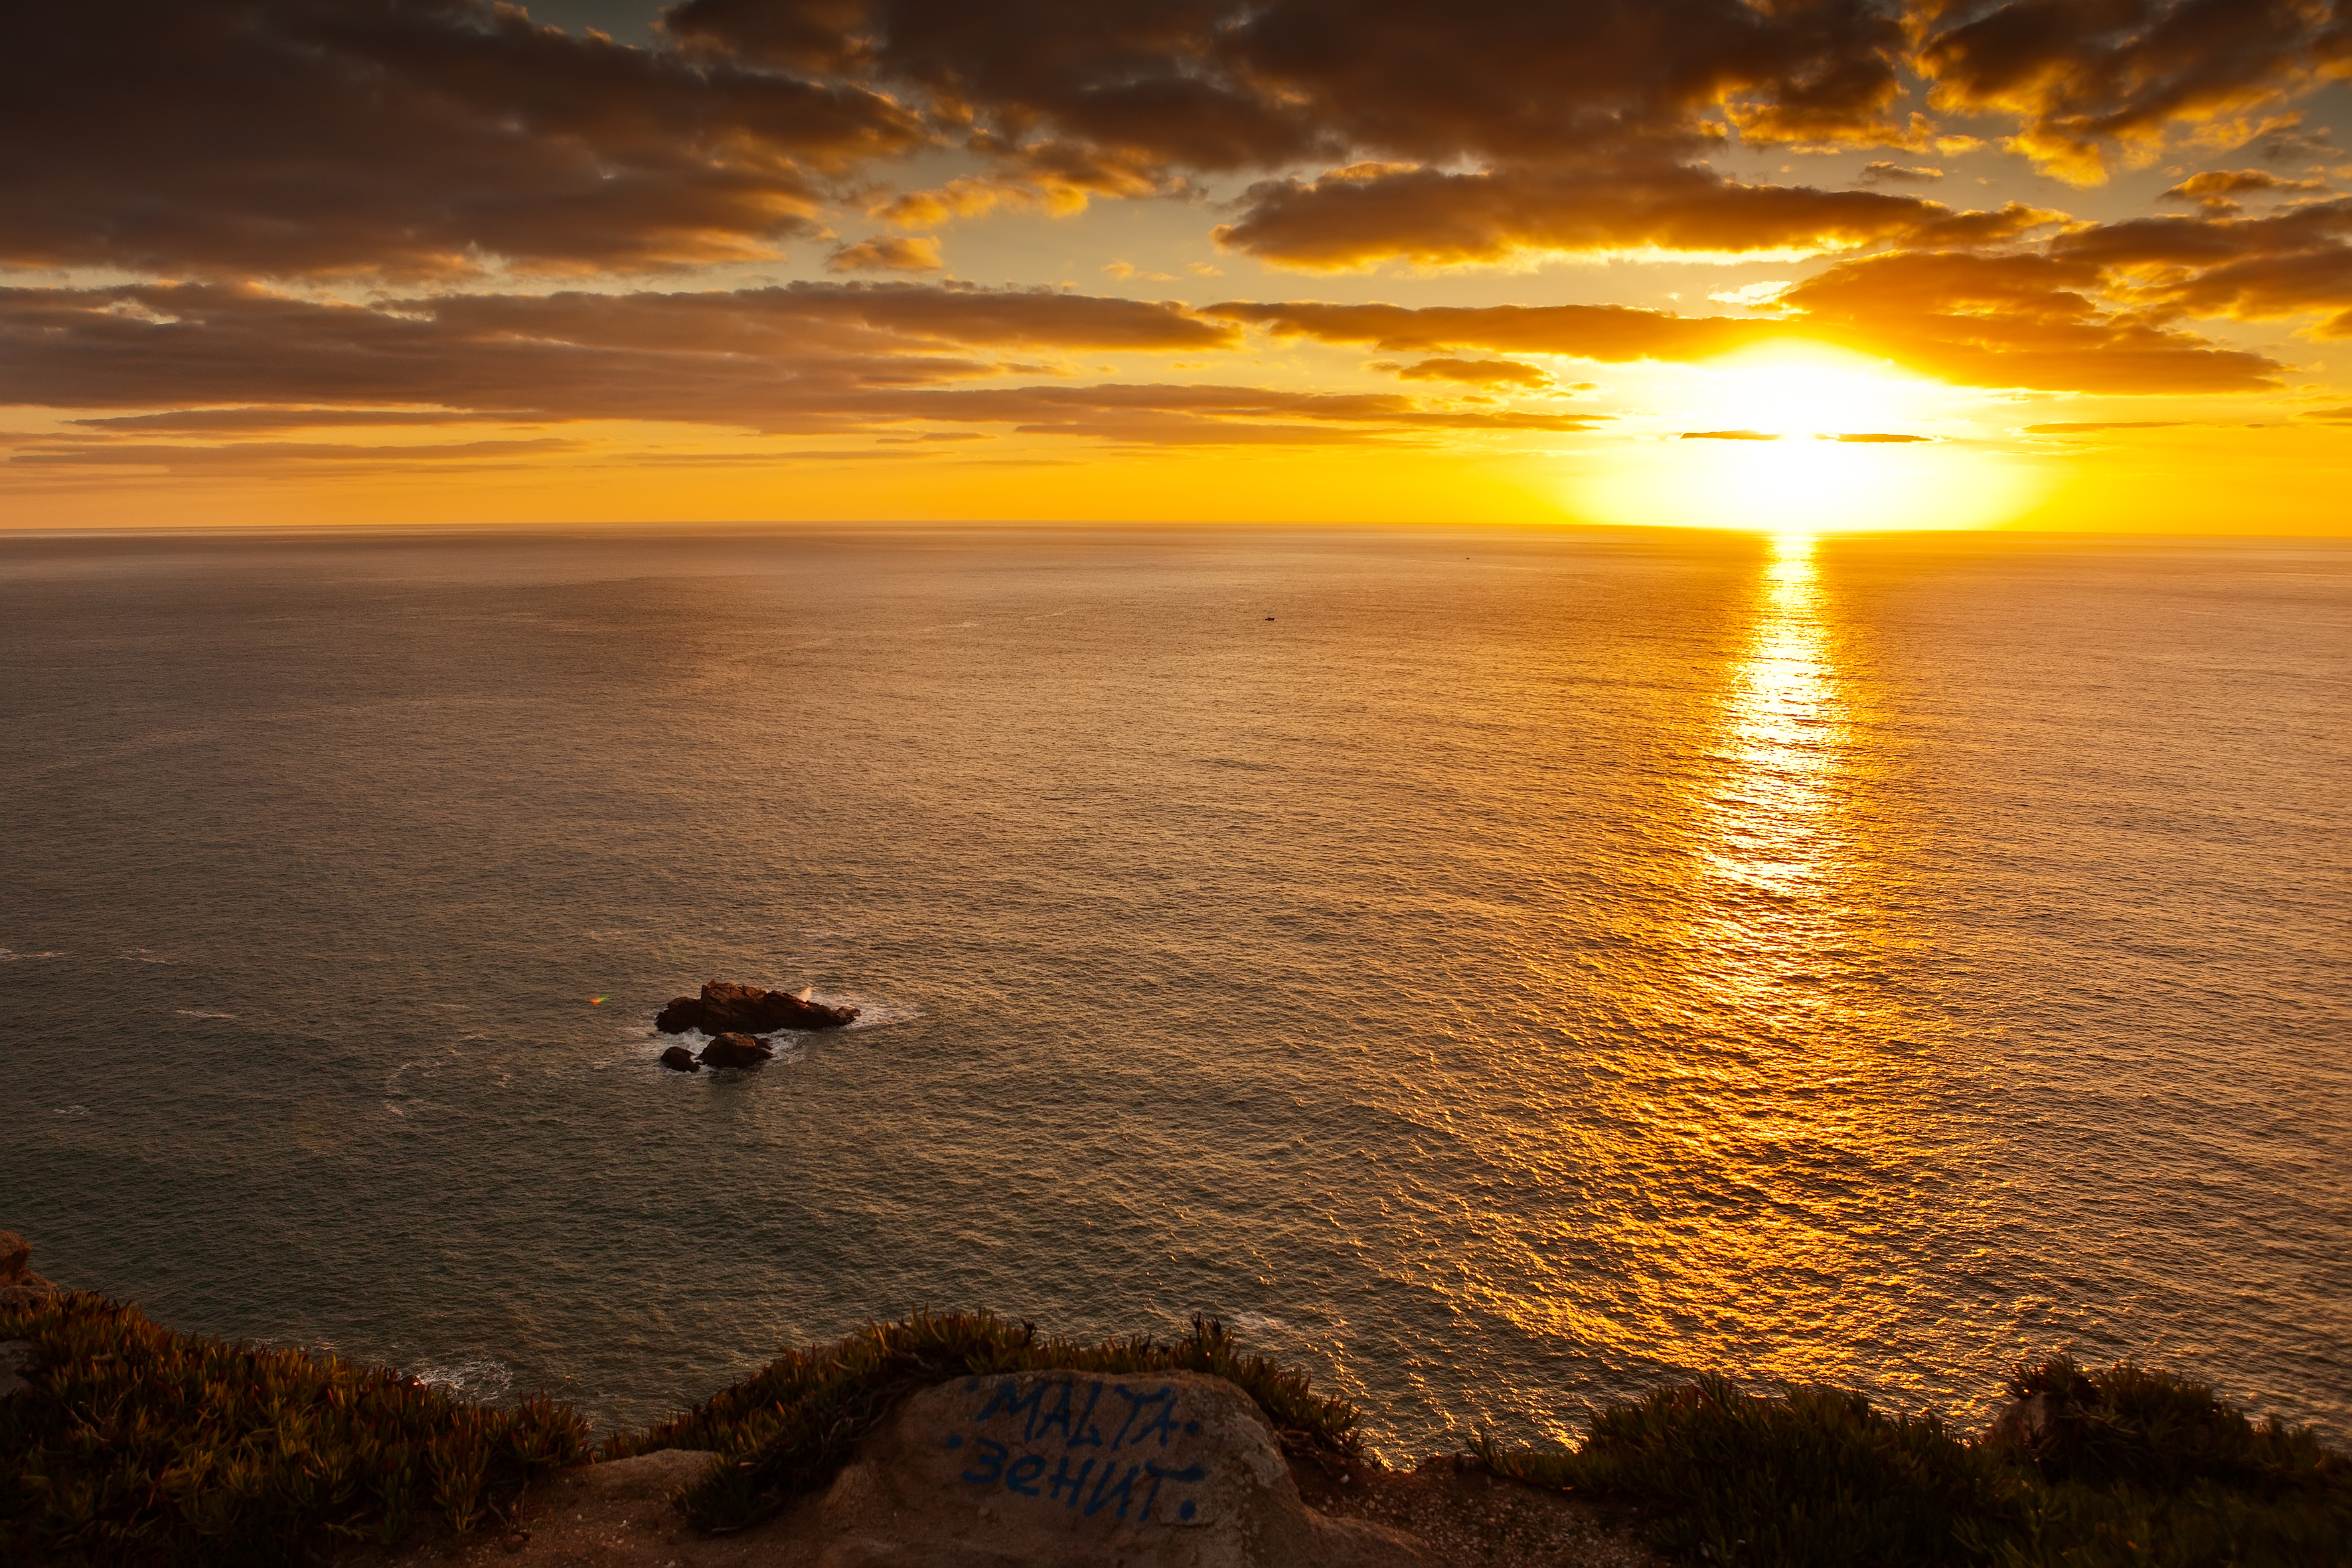 Cabo_da_Roca Sunset